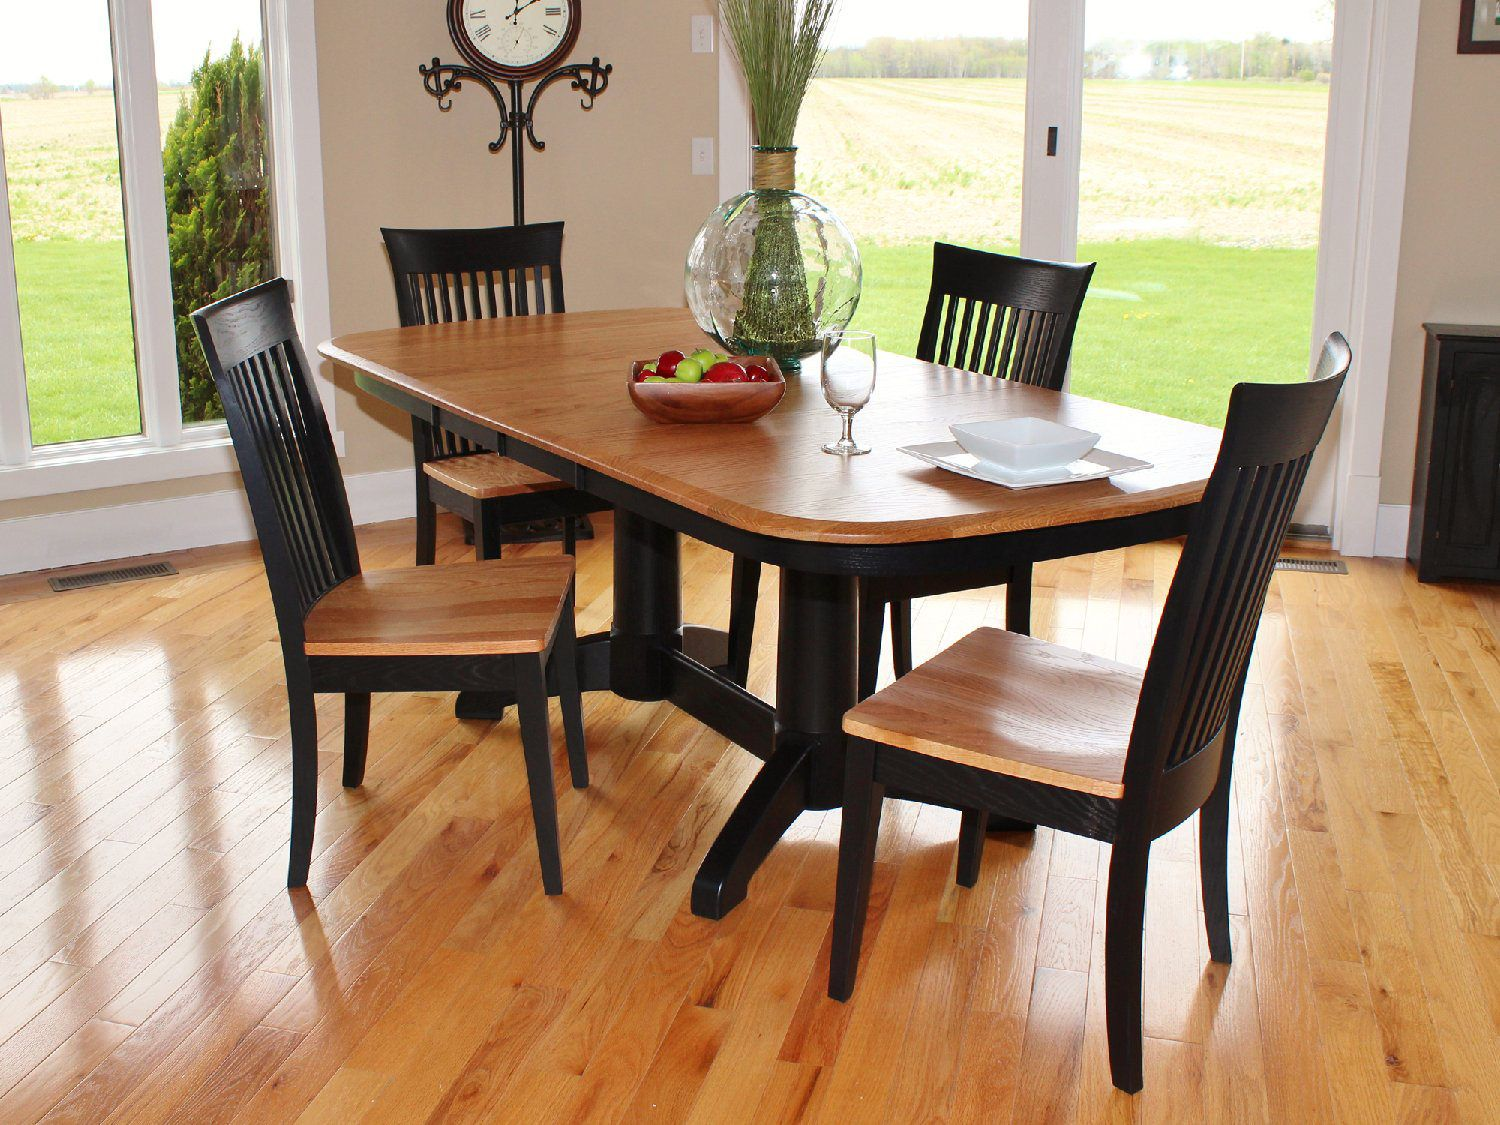 Split Rock Amish Oak Table With 4 Carlisle Side Chairs At HOM Furniture